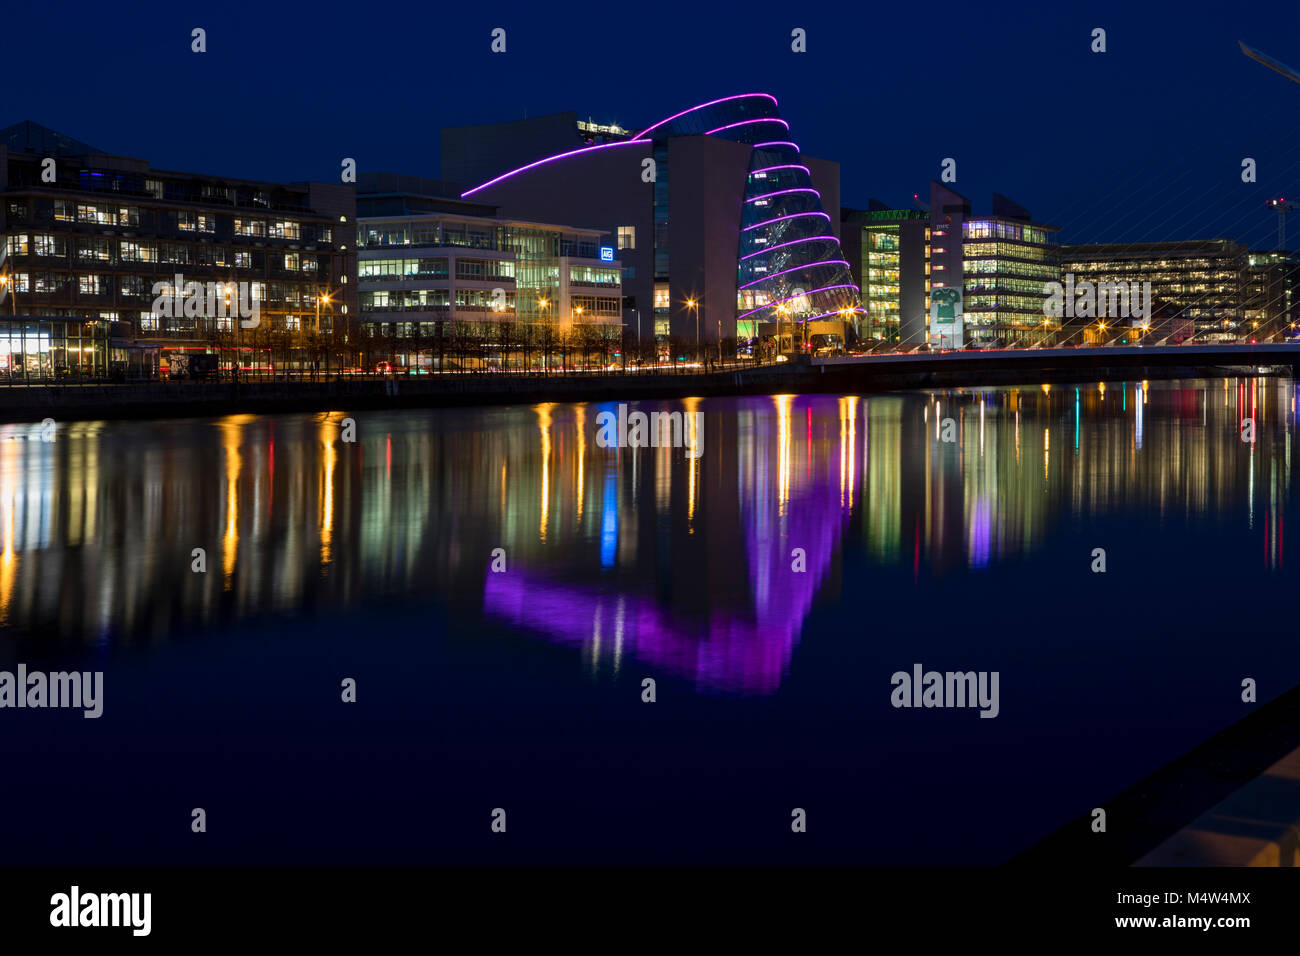 Dublin's River Liffey at night, nightscape of Dublin. - Stock Image